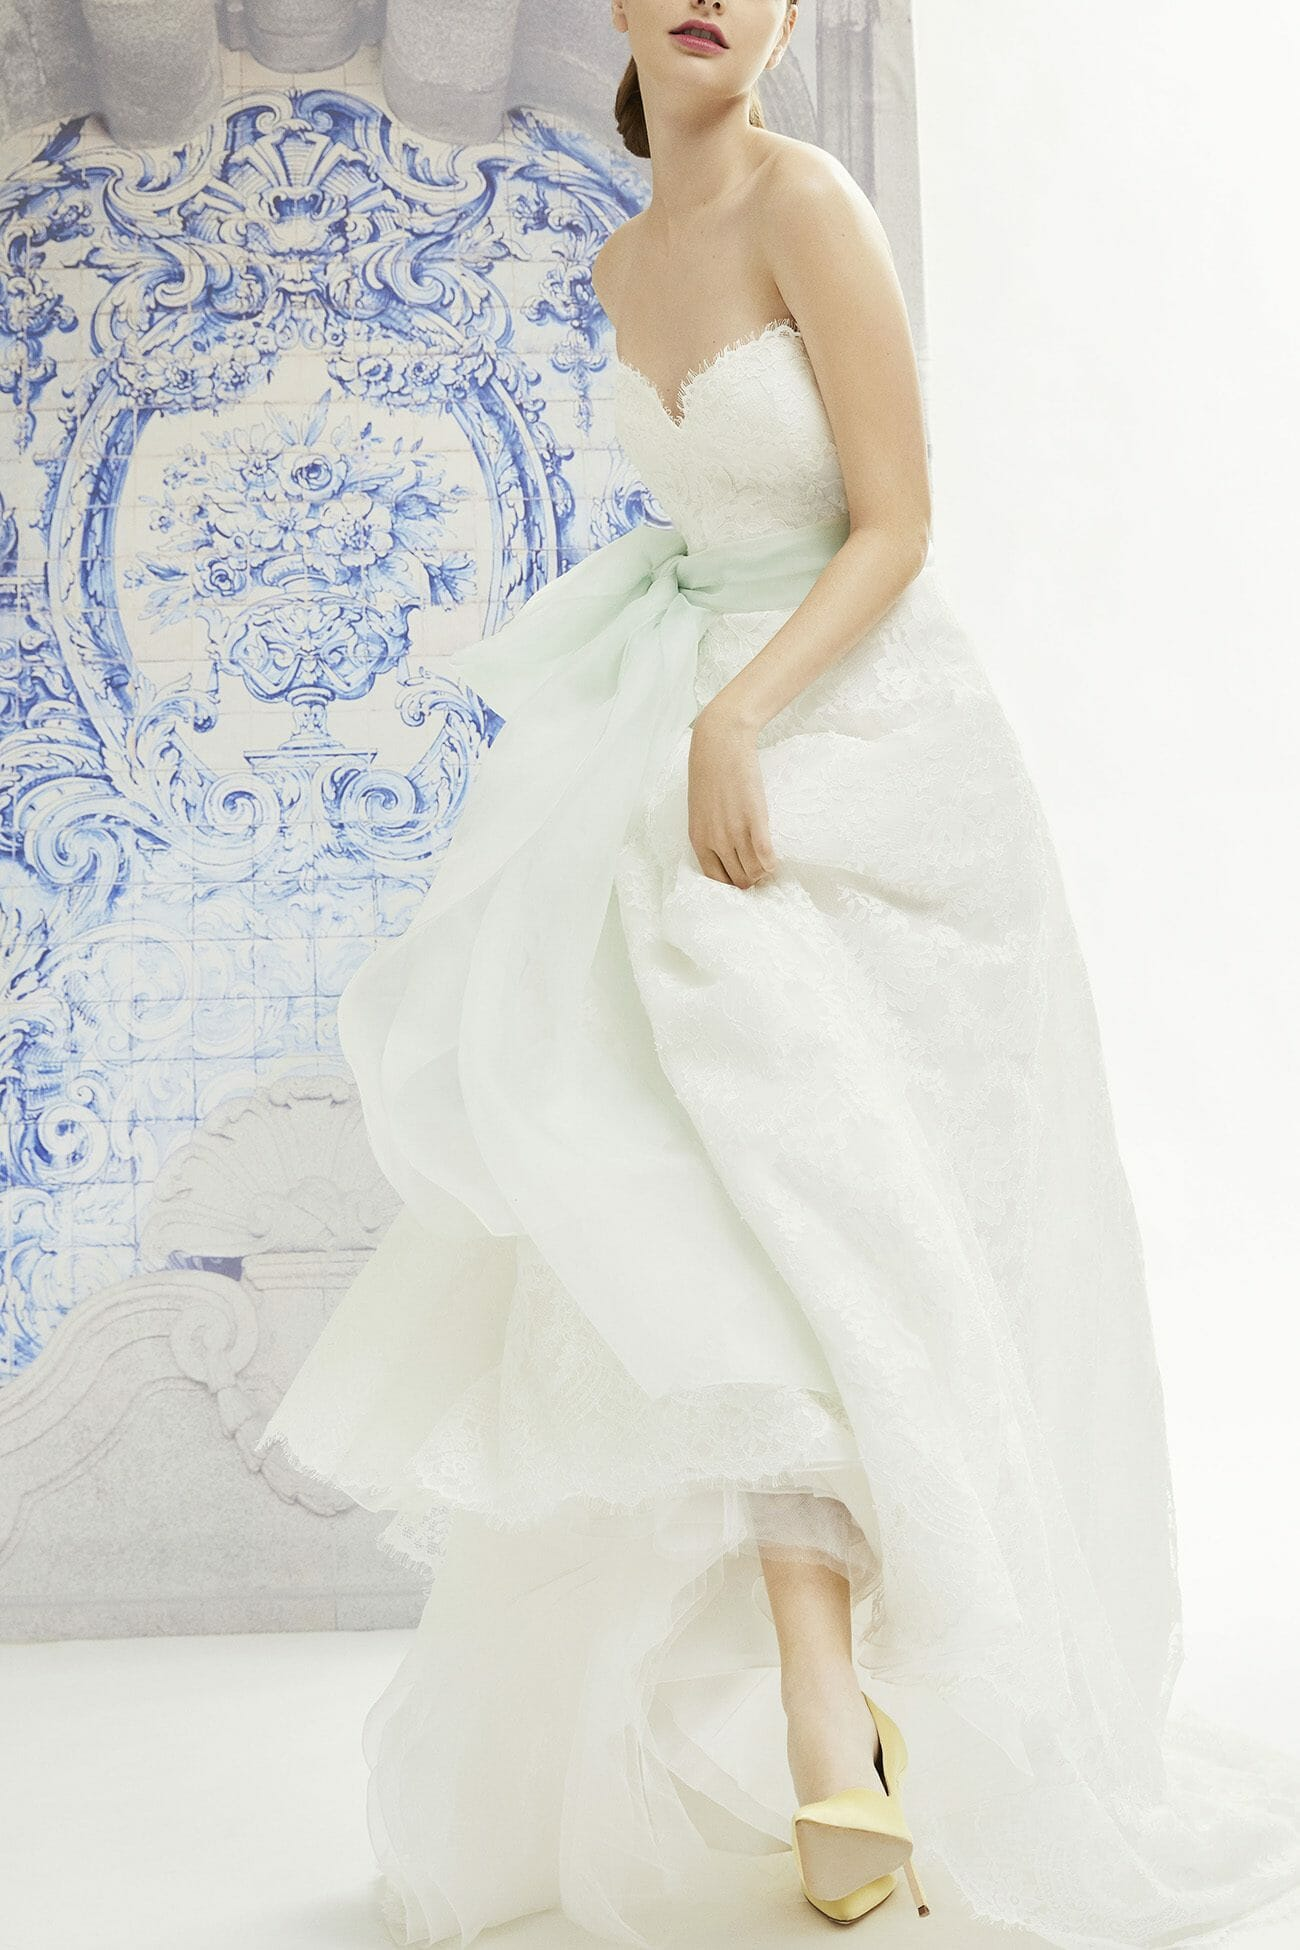 Carolina-Herrera-New-York-Bridal-Fall-2019-ida